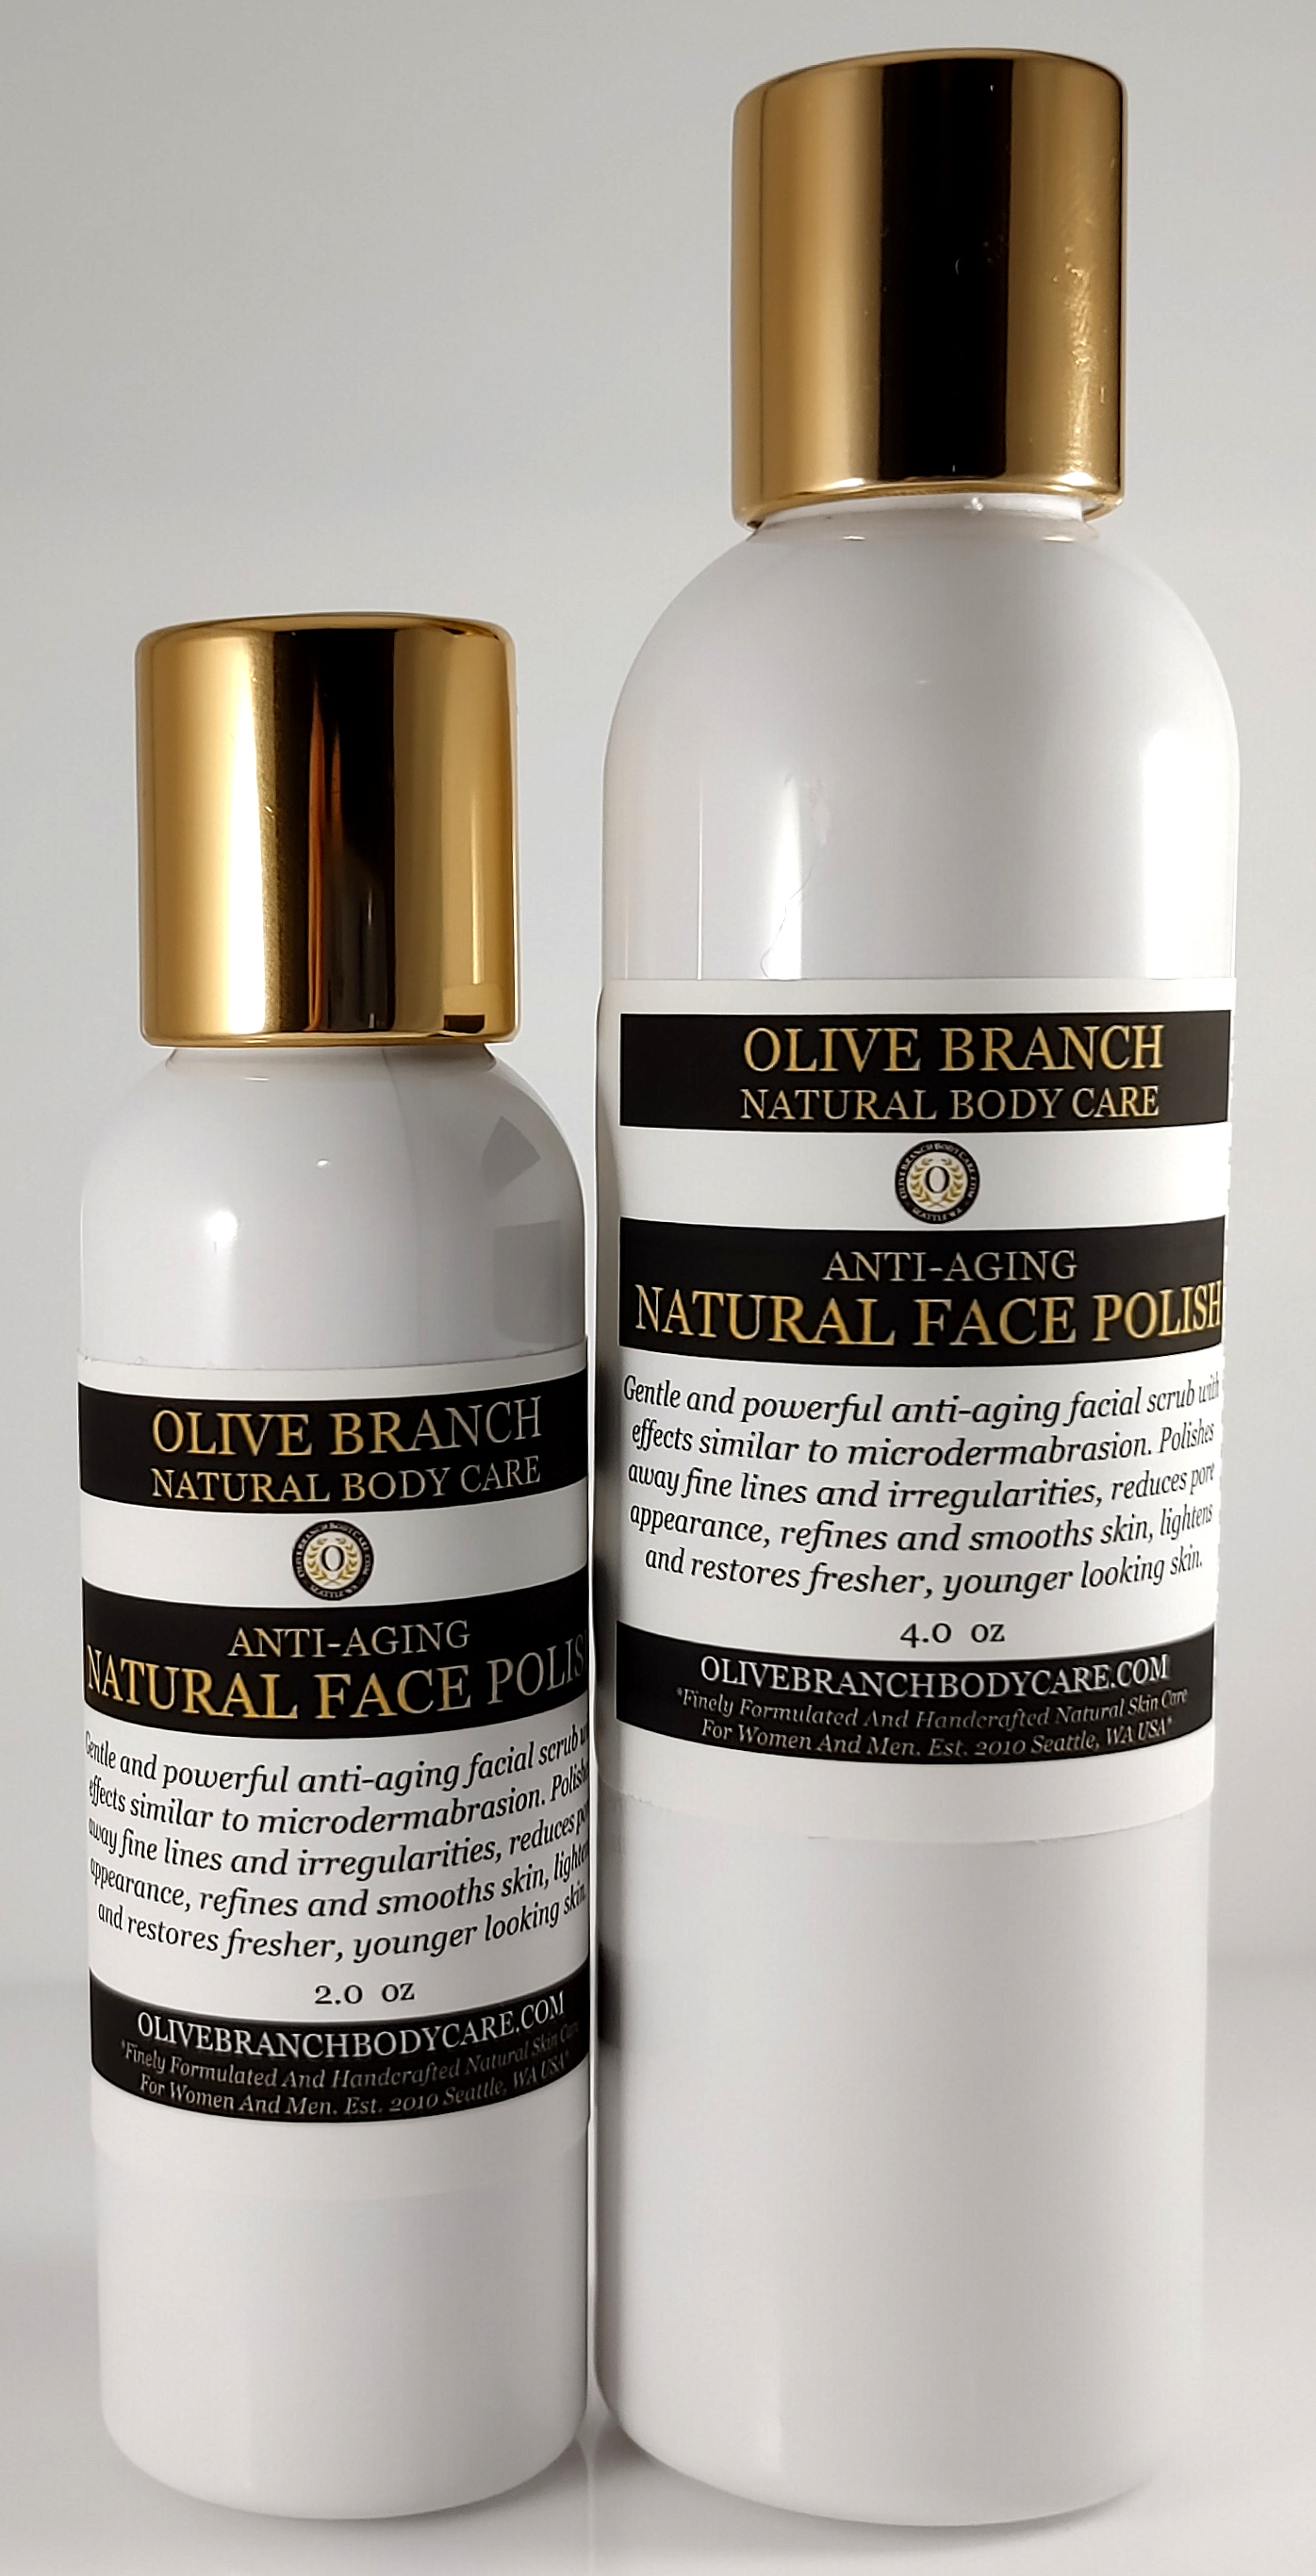 olivebranchbodycare.com - Finely Handcrafted Natural Skin Care: Anti-Aging  Natural Face Polish *Newly Enhanced*